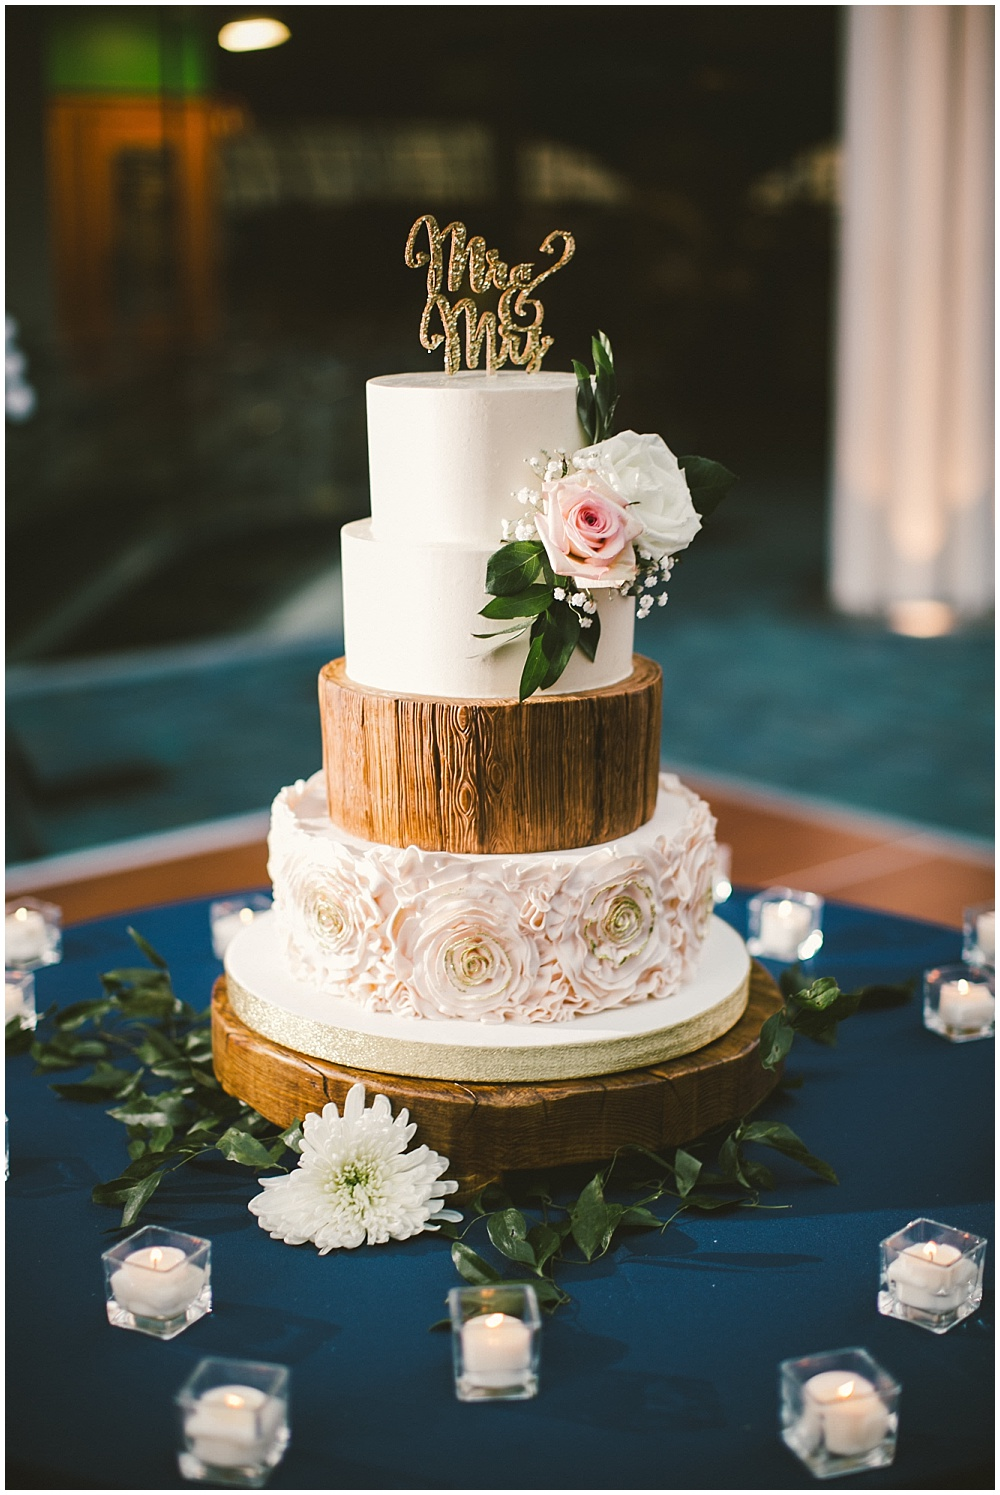 Blush, wood and gold wedding cake | Indianapolis Central Library Wedding by Jennifer Van Elk Photography & Jessica Dum Wedding Coordination